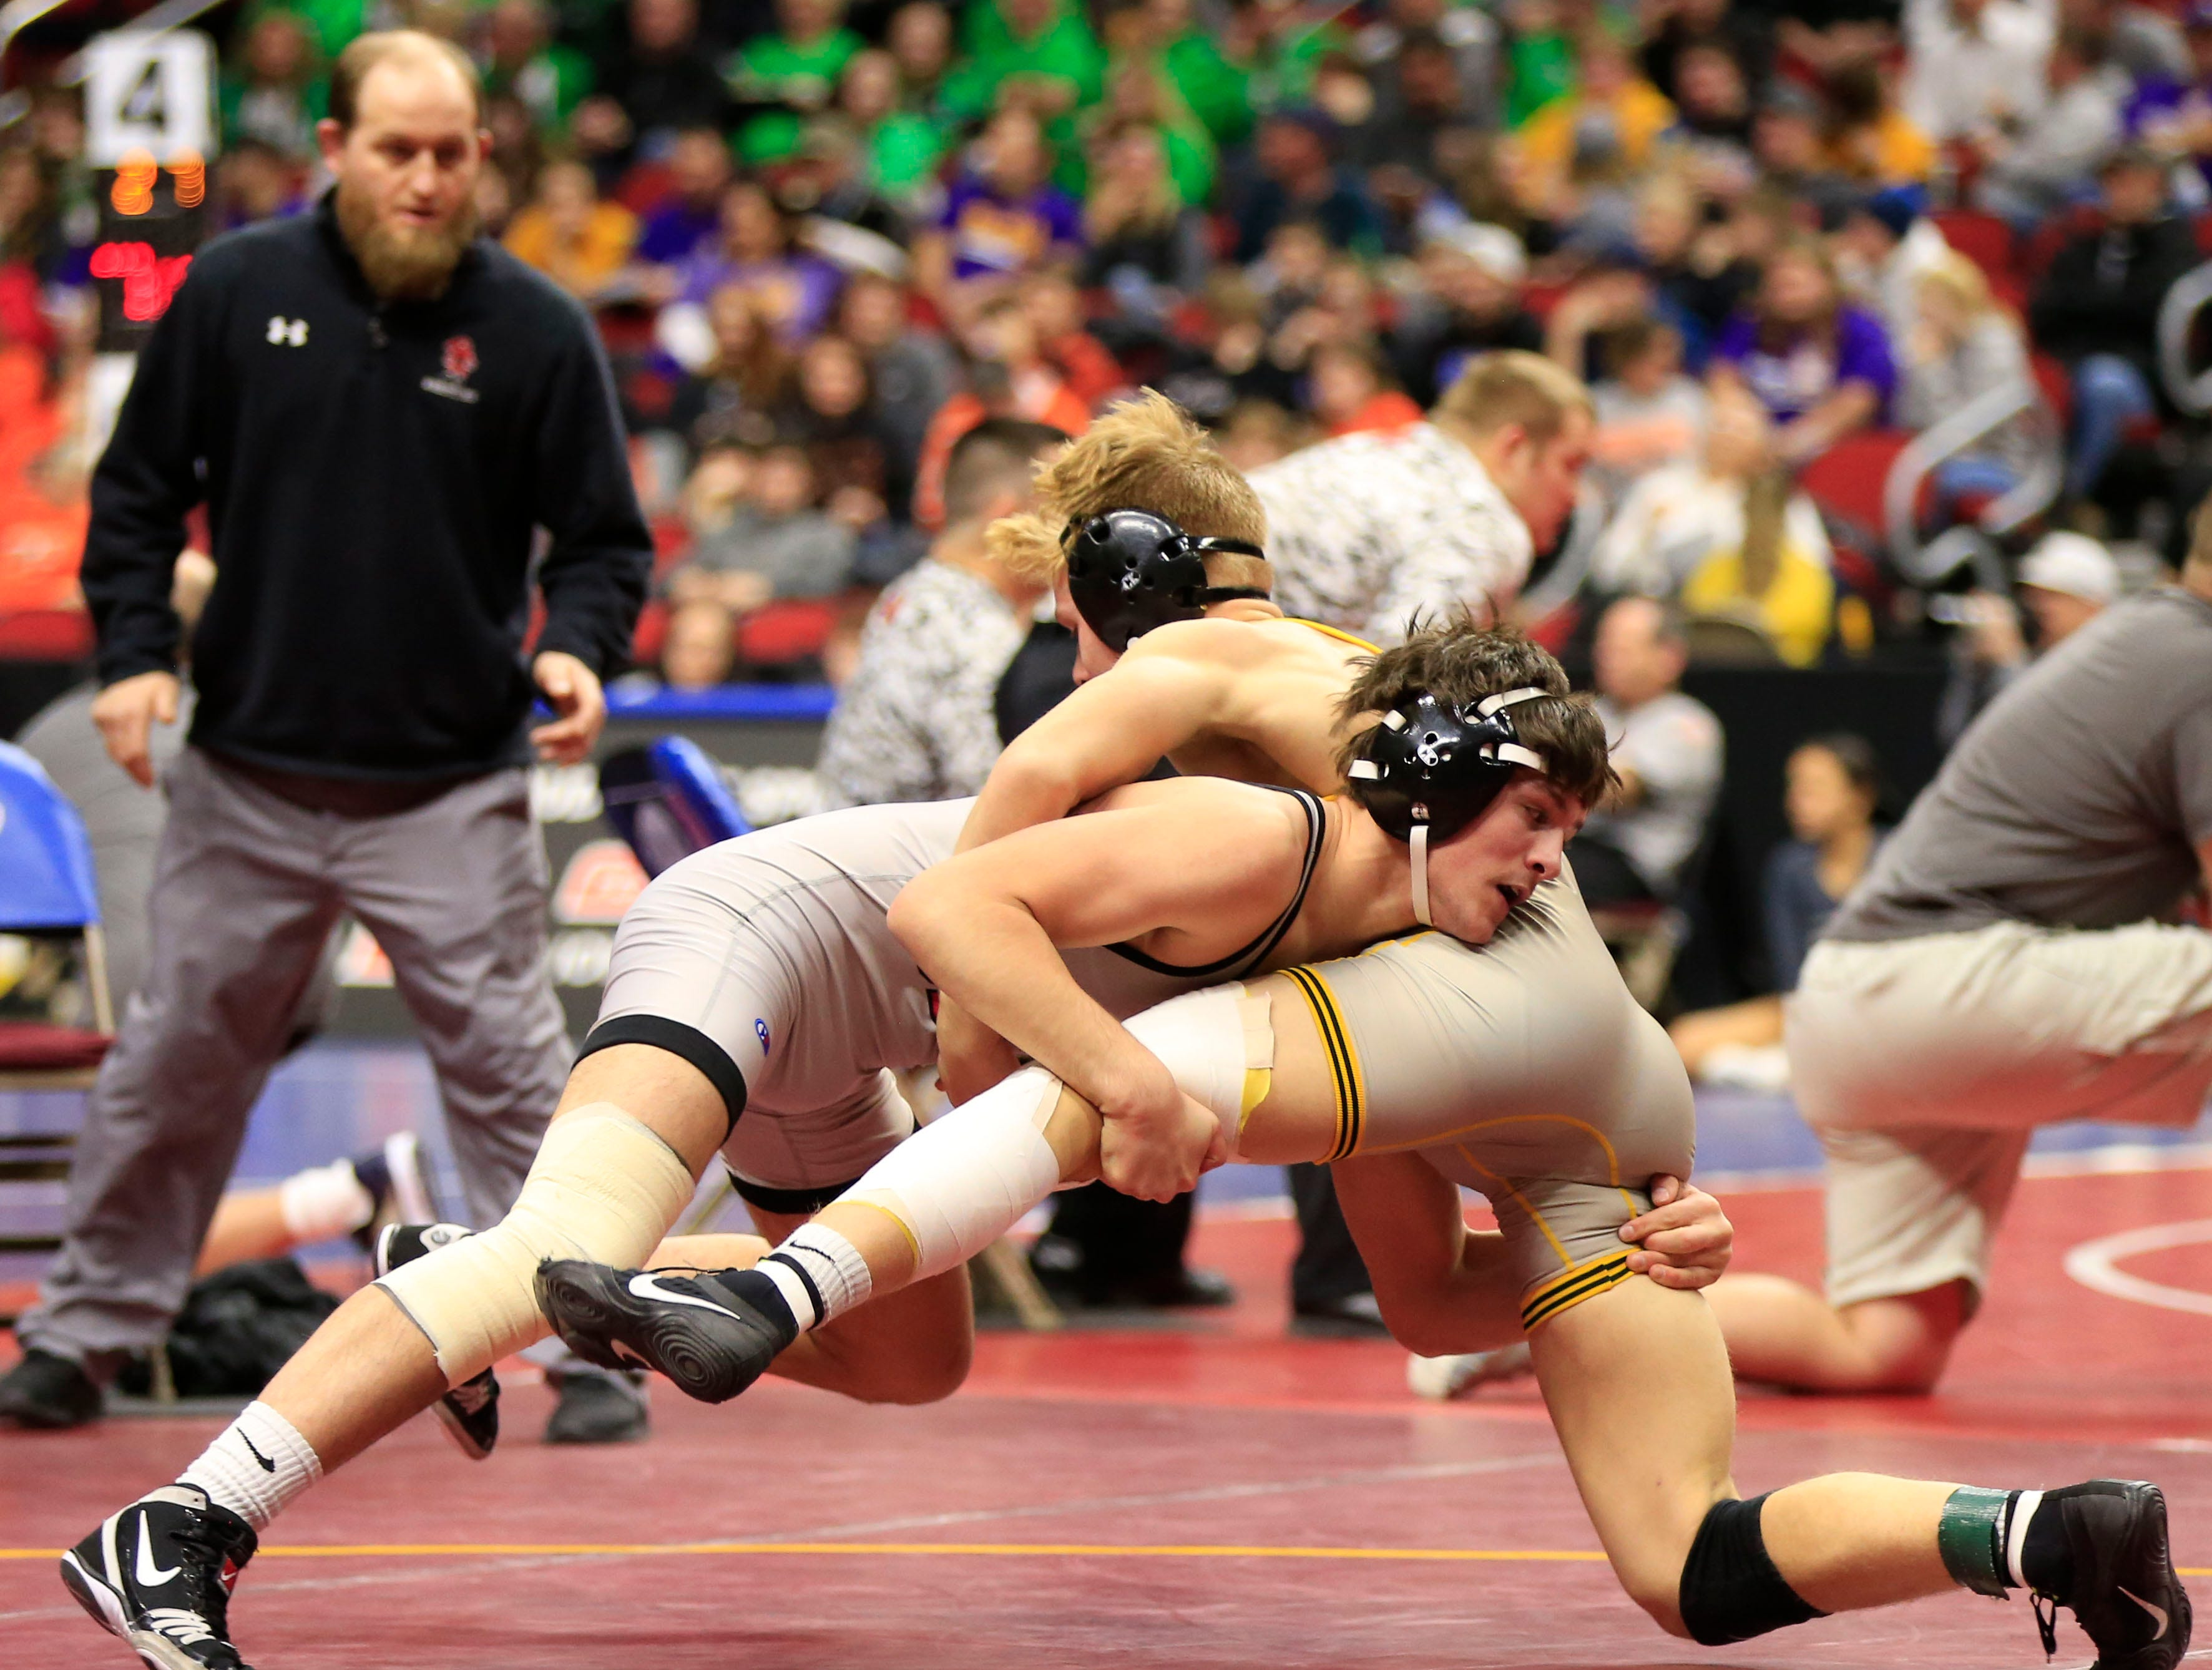 Colby Schriever of Mason City defeats Ian Heise of Waverly-Shell Rock during a 138 Lb 3A semifinal match at the state wrestling tournament Friday, Feb. 15, 2019.